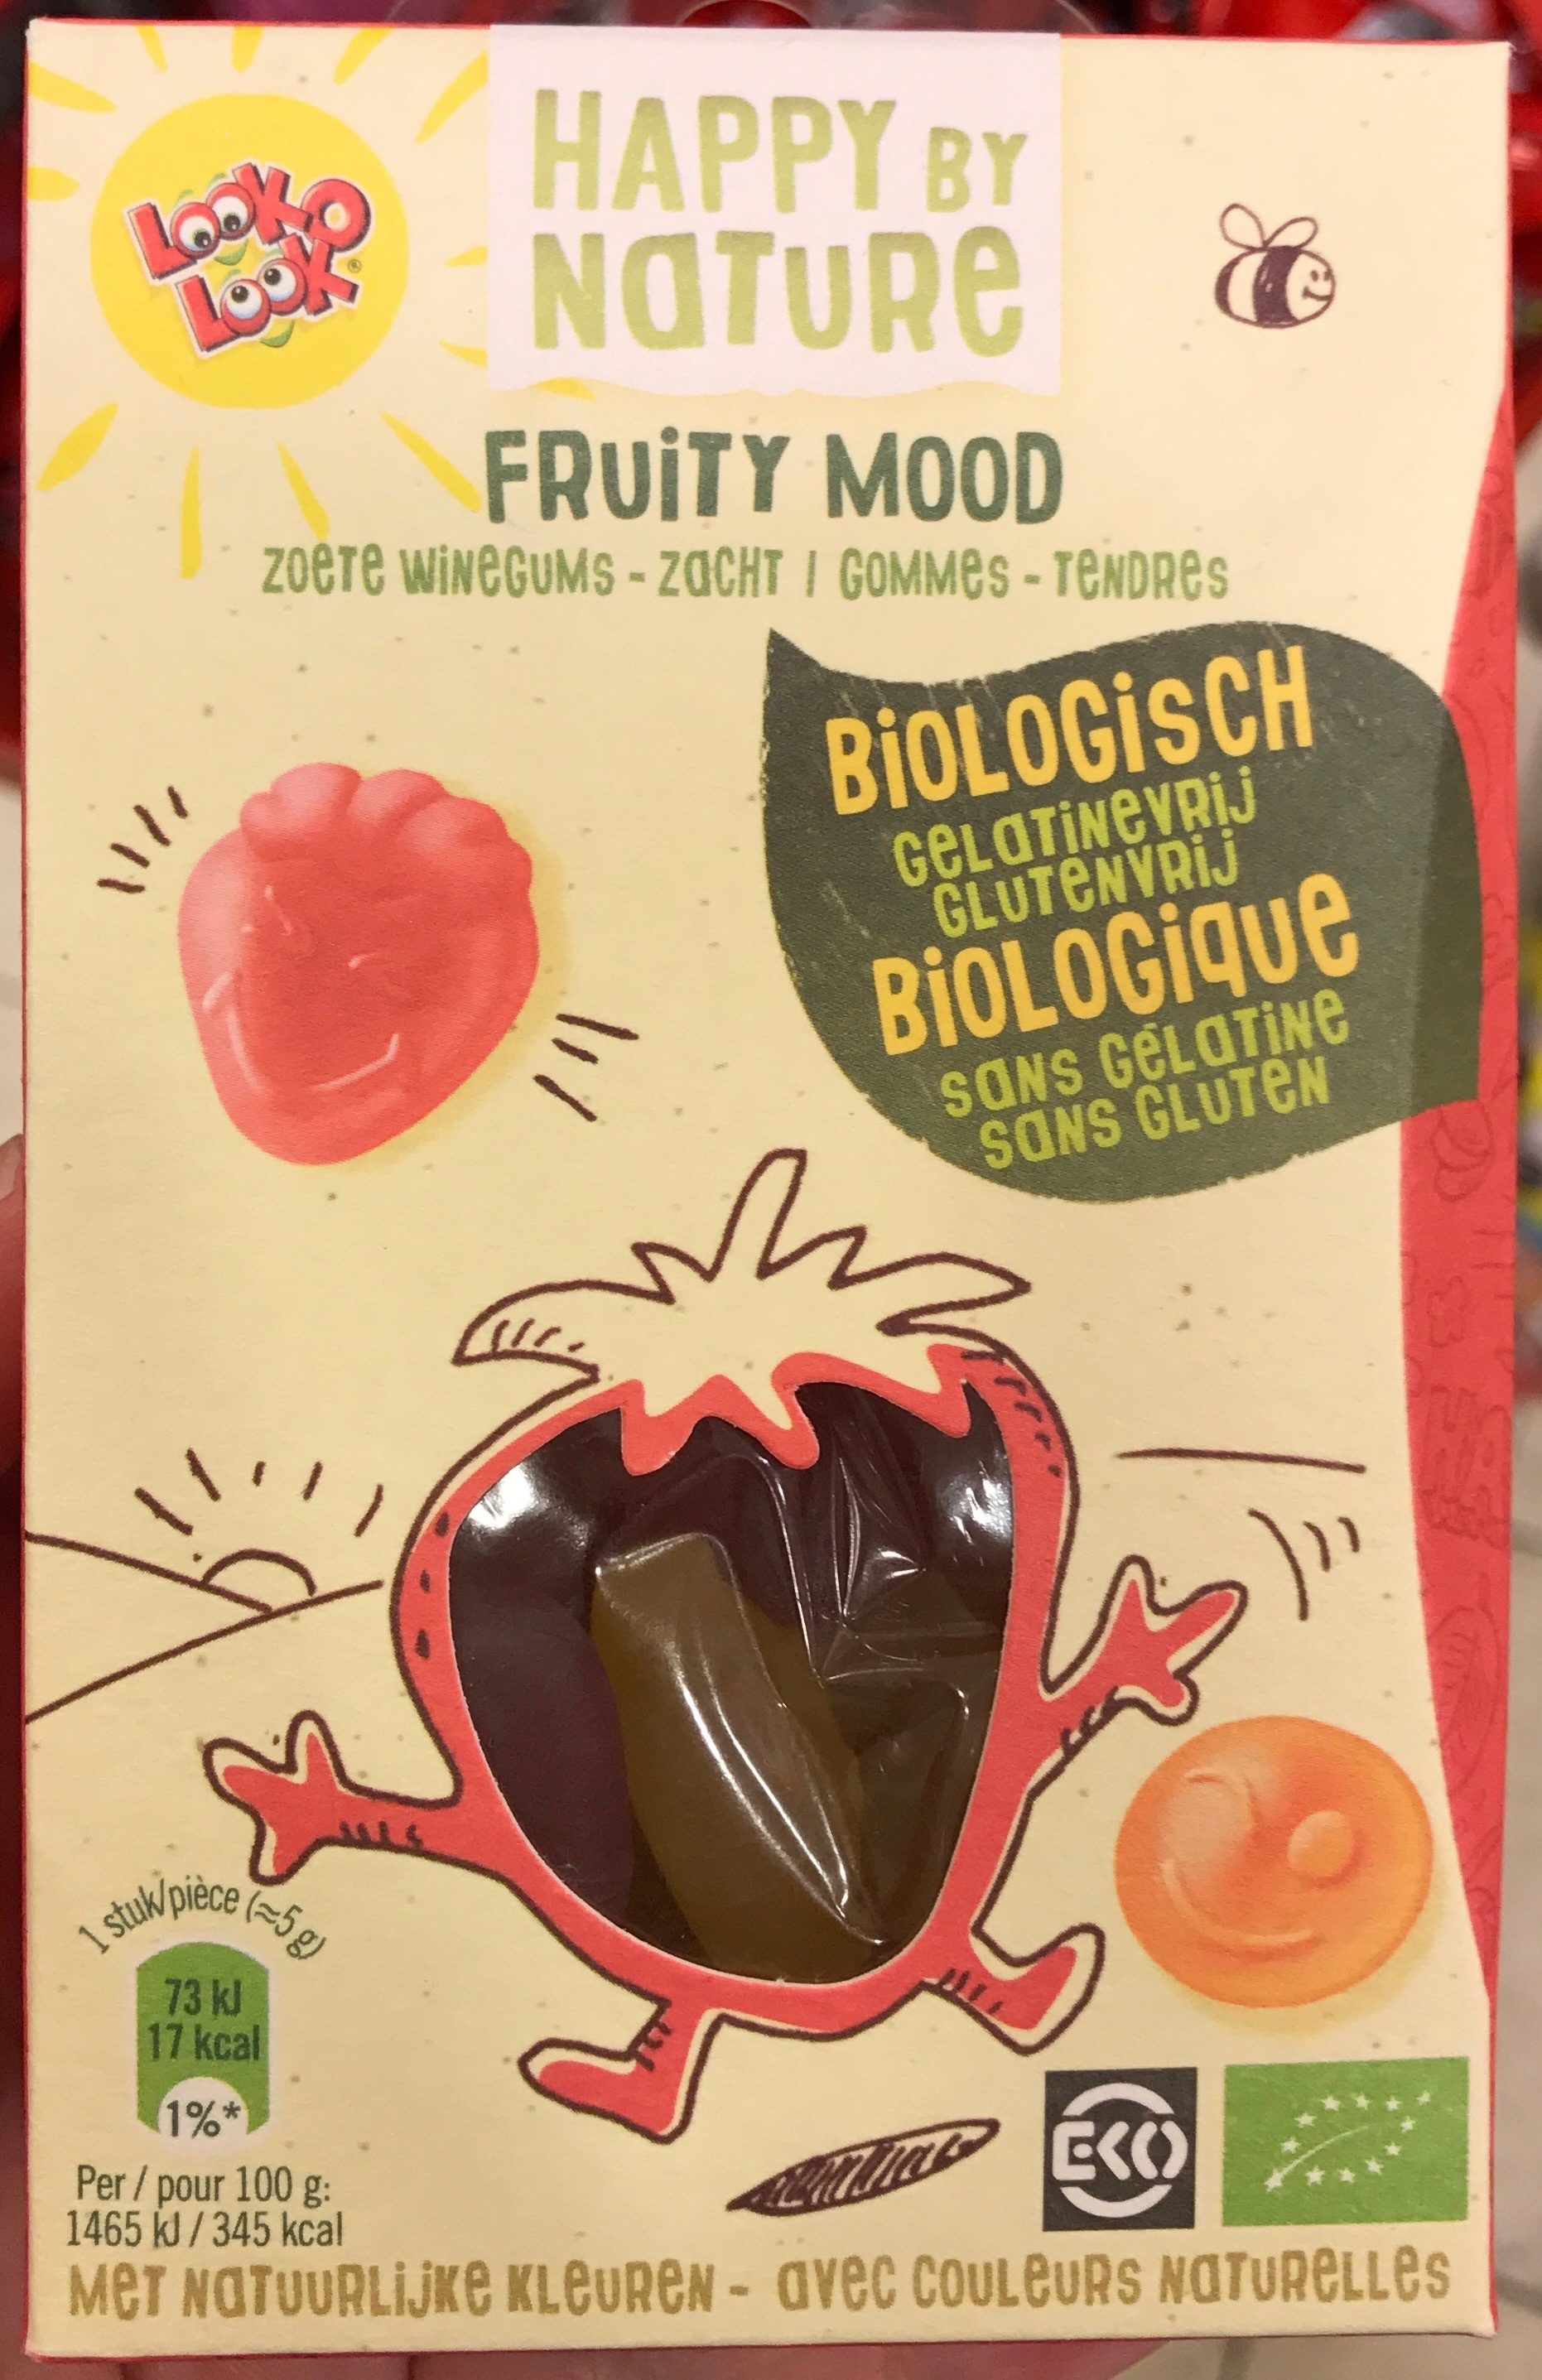 Happy by Nature Fruity Mood Gommes tendres - Product - fr